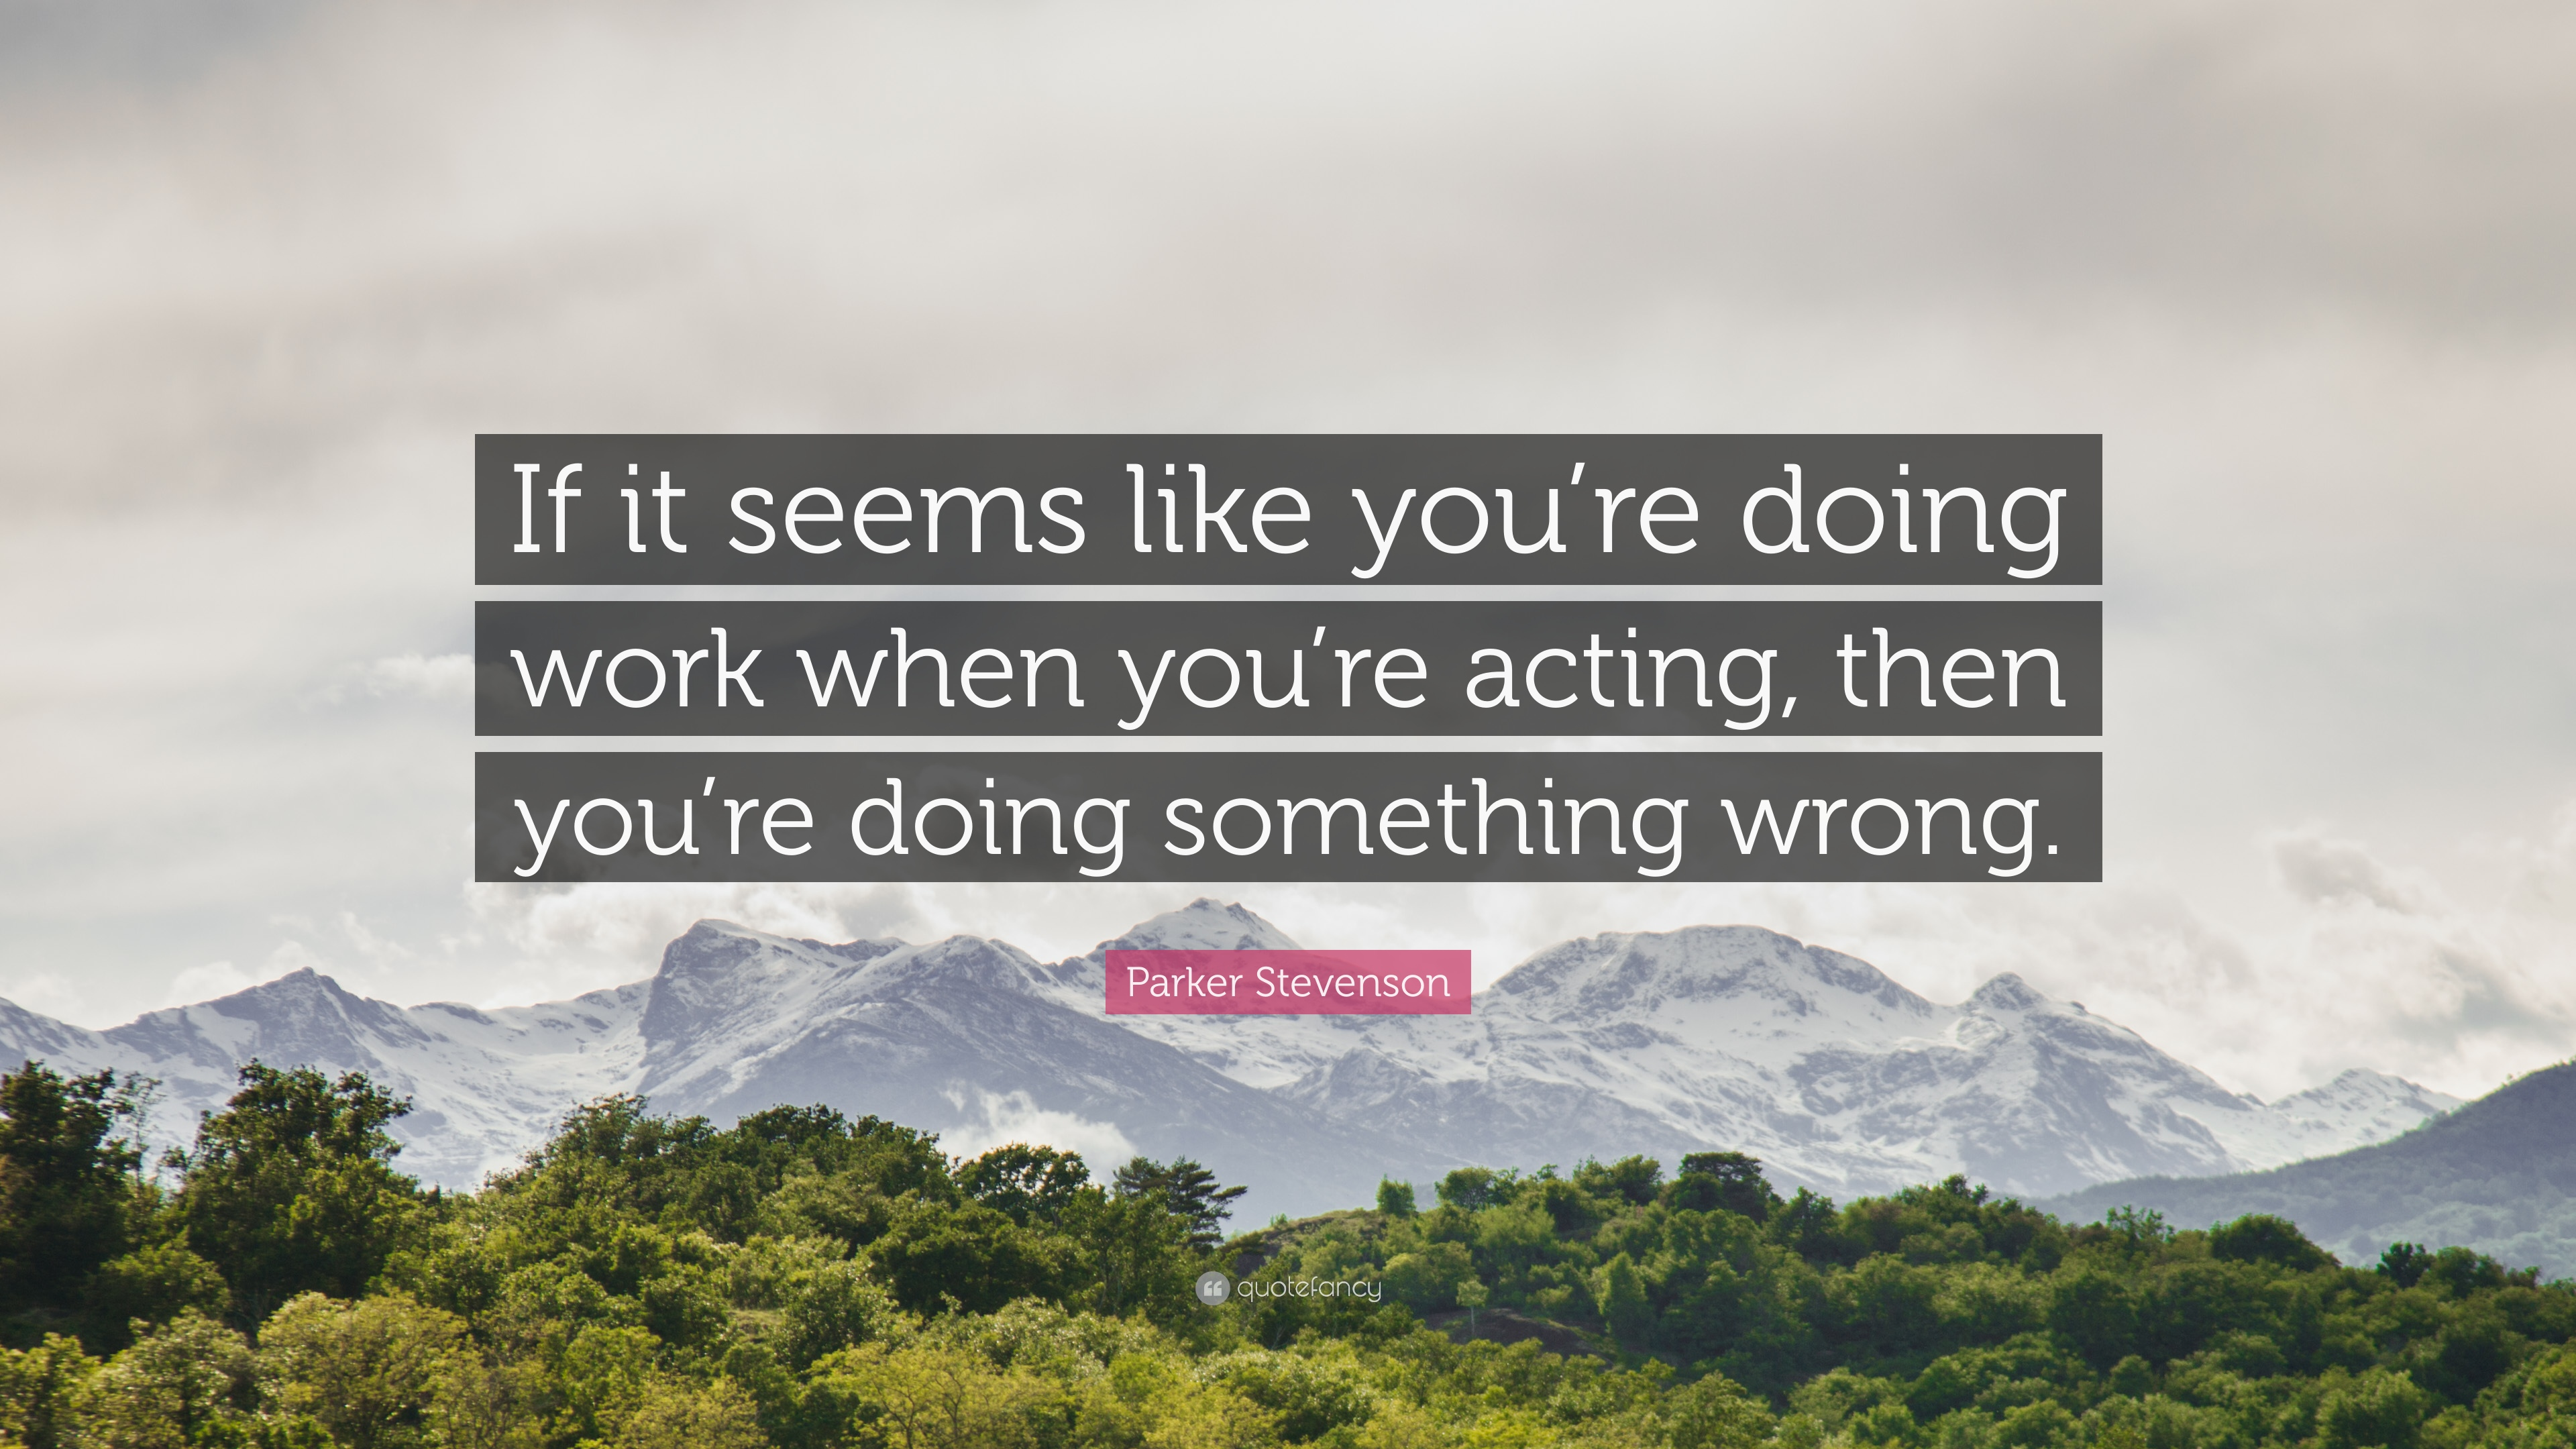 When it seems to you that something is wrong, it is because